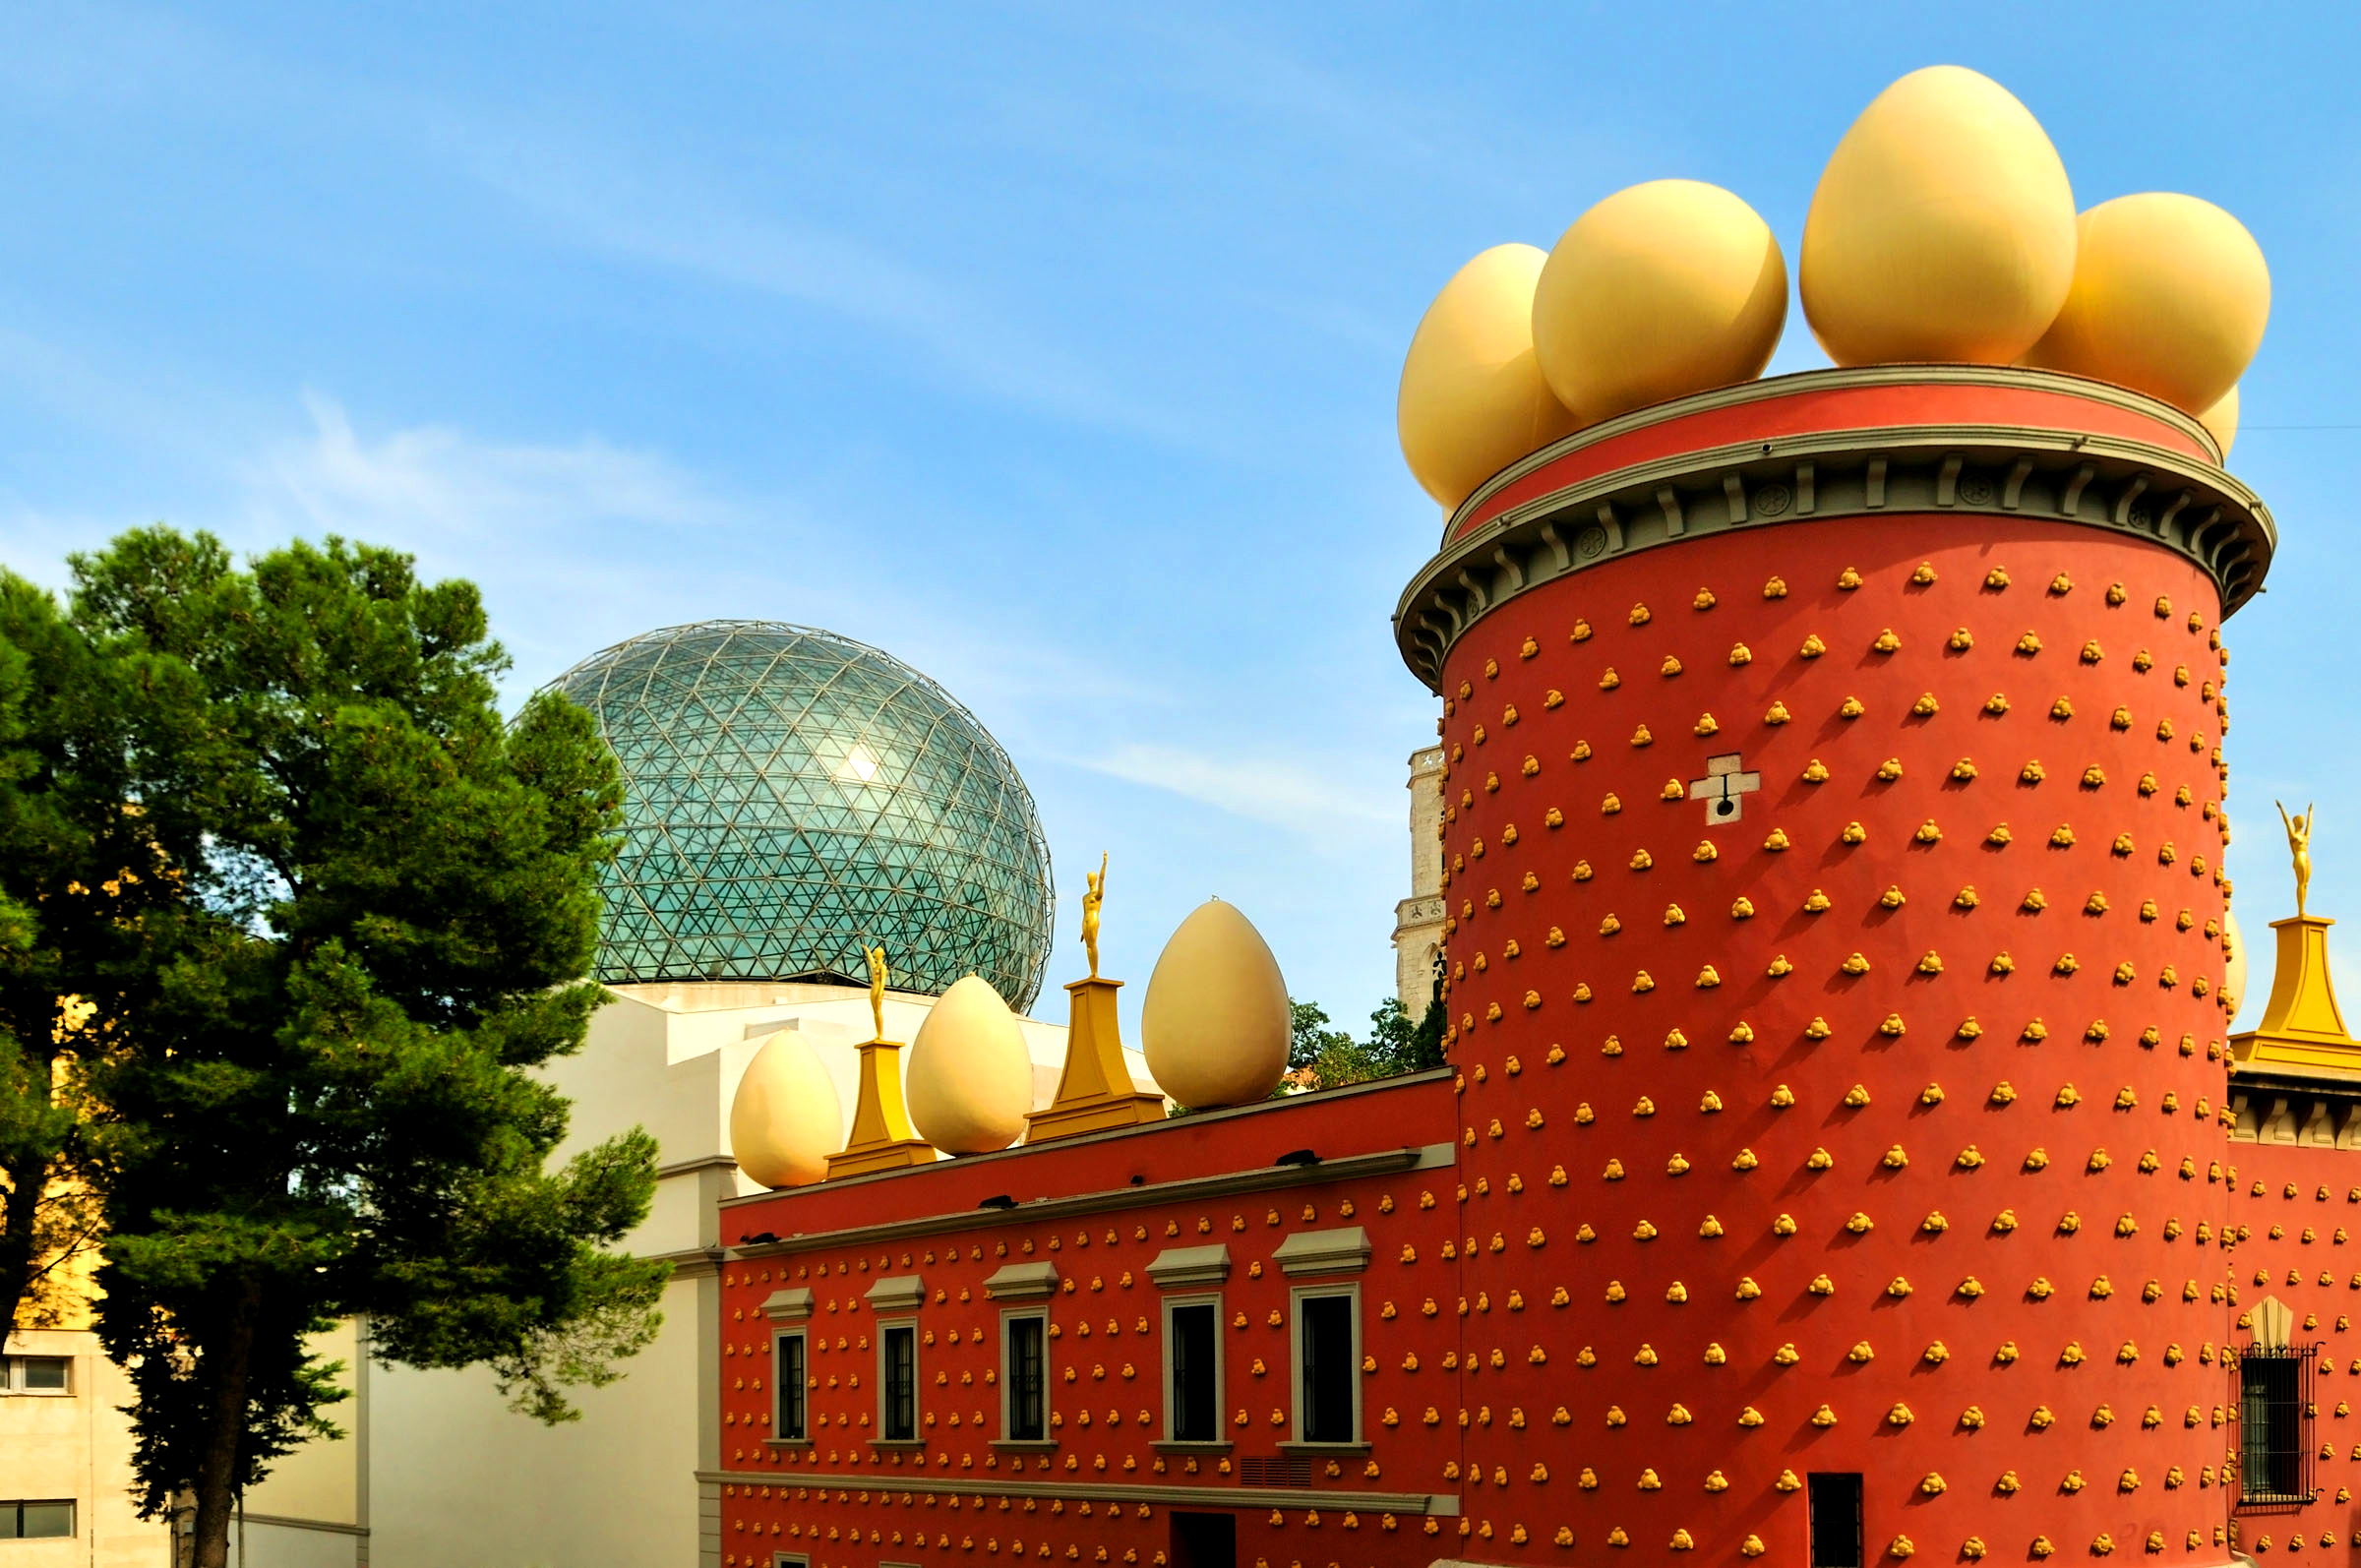 Dali Theatre Museum in Figueres, Spain